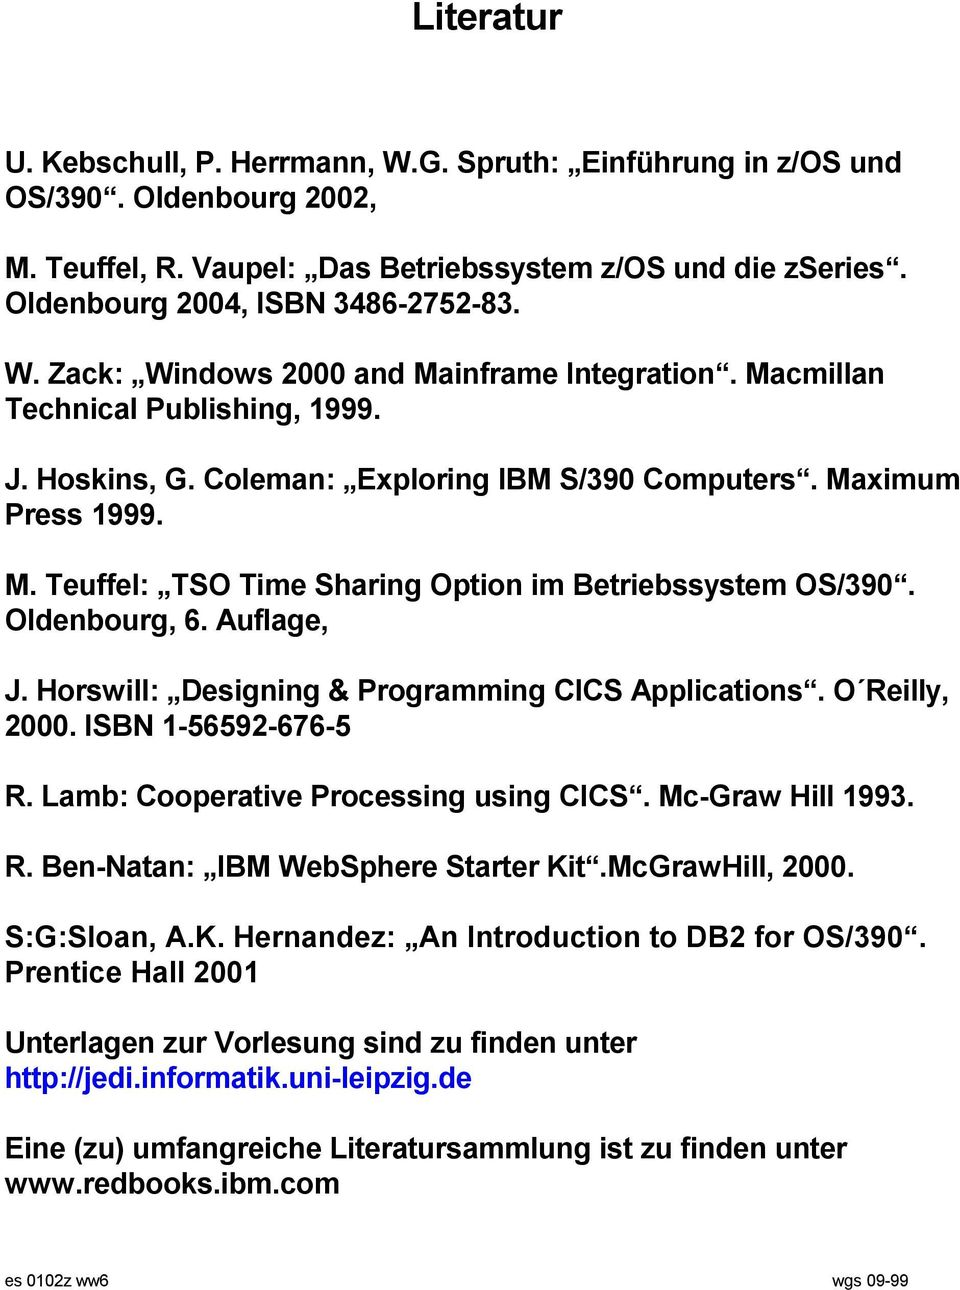 Auflage, J. Horswill: Designing & Programming CICS Applications. O Reilly, 2000. ISBN 1-56592-676-5 R. Lamb: Cooperative Processing using CICS. Mc-Graw Hill 1993. R. Ben-Natan: IBM WebSphere Starter Kit.